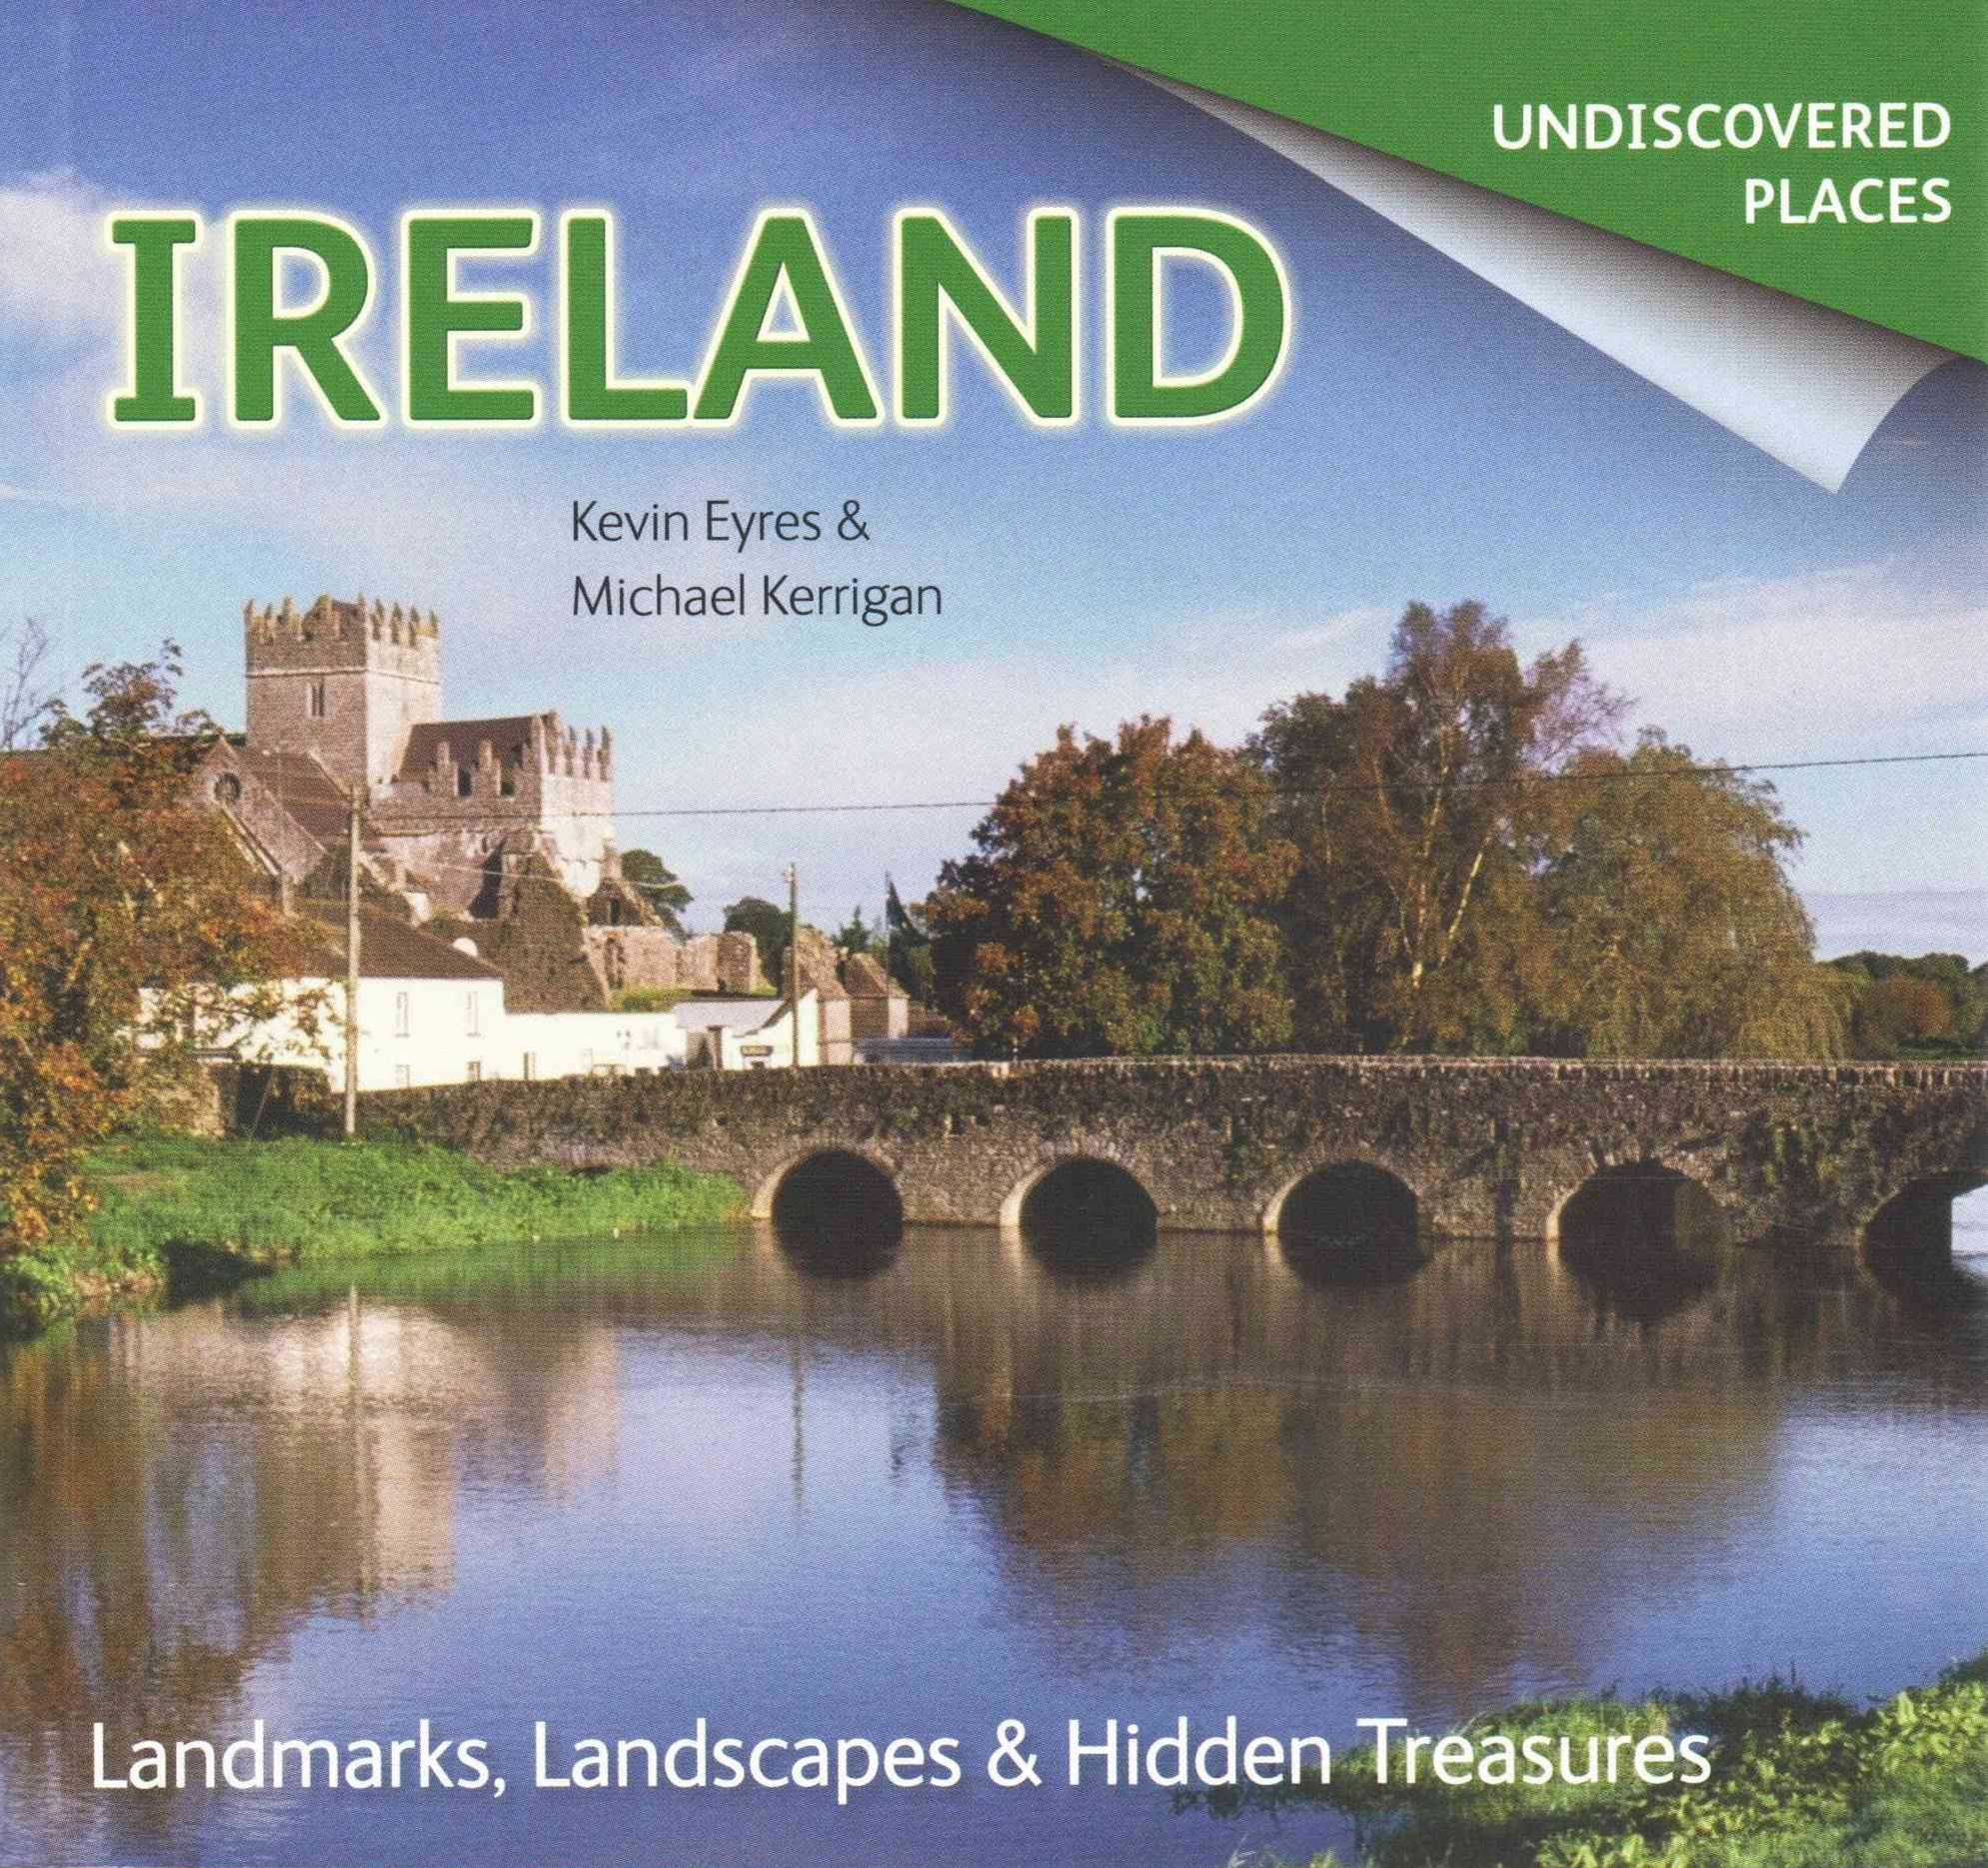 Undiscovered Places: Ireland